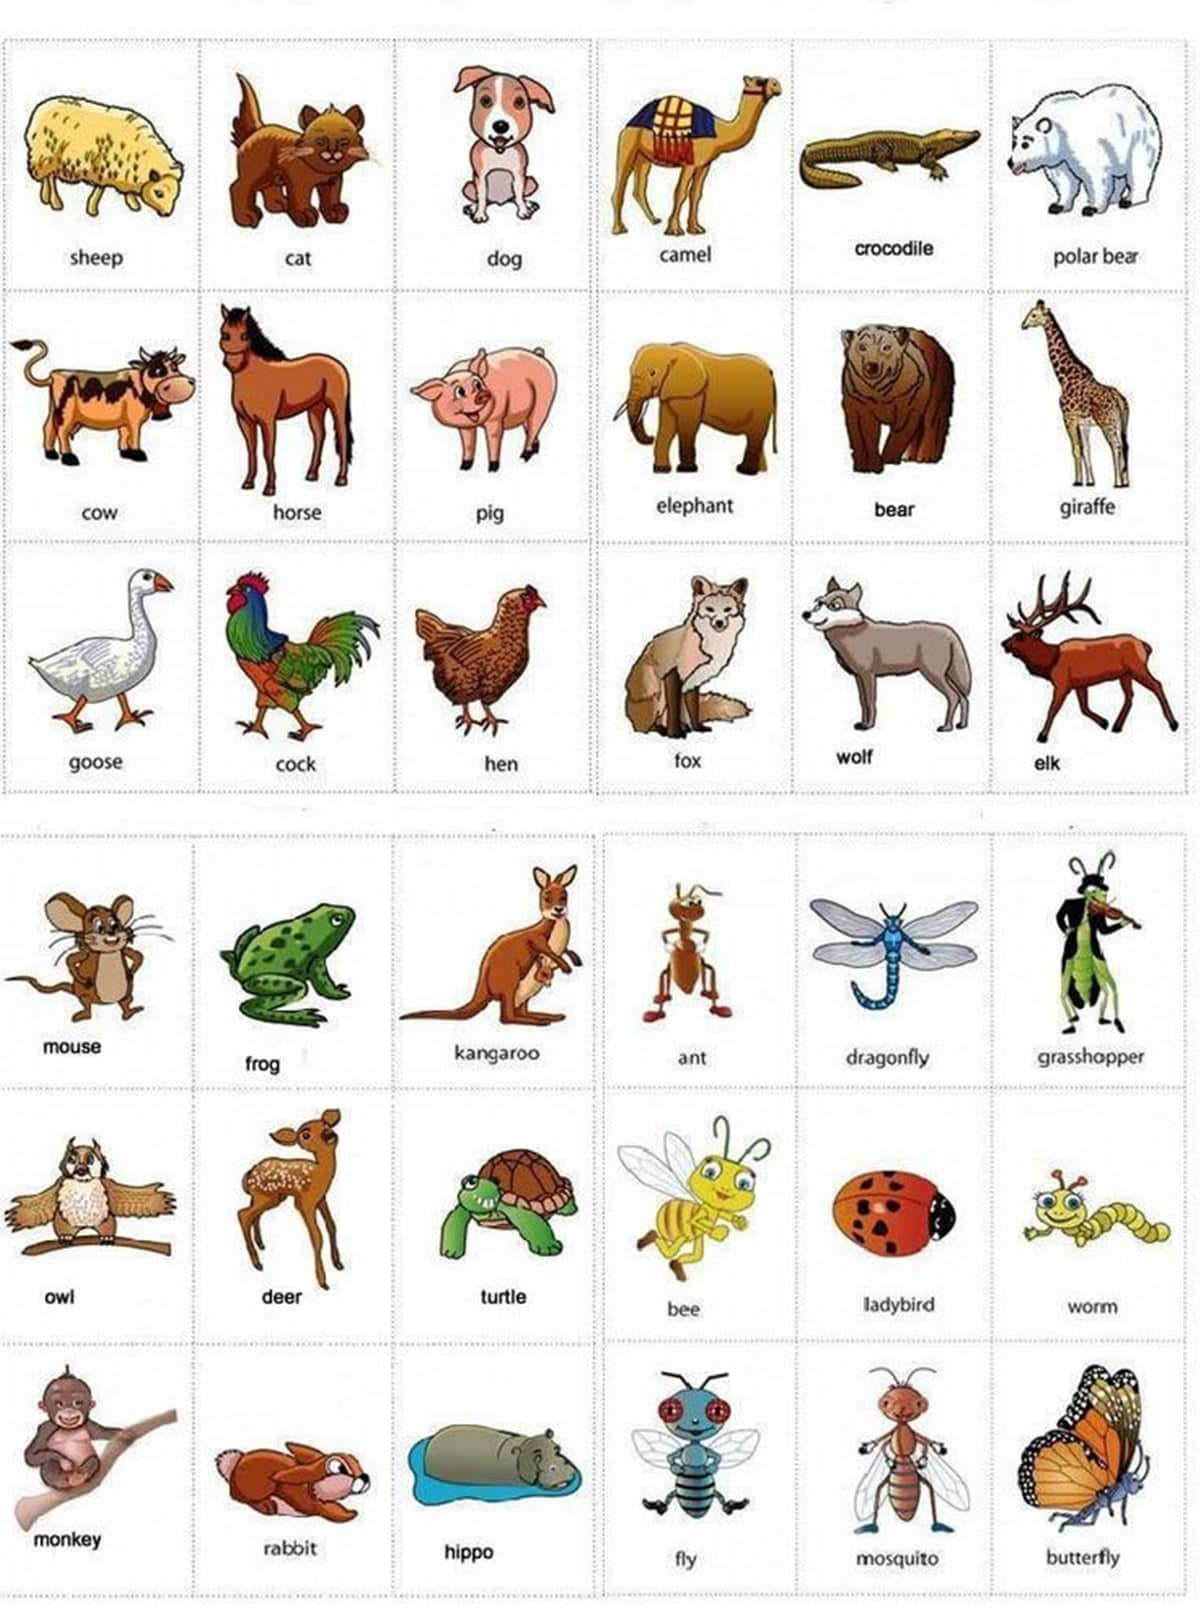 Learn English Vocabulary through Pictures: 100+ Animal Names - ESLBuzz  Learning English